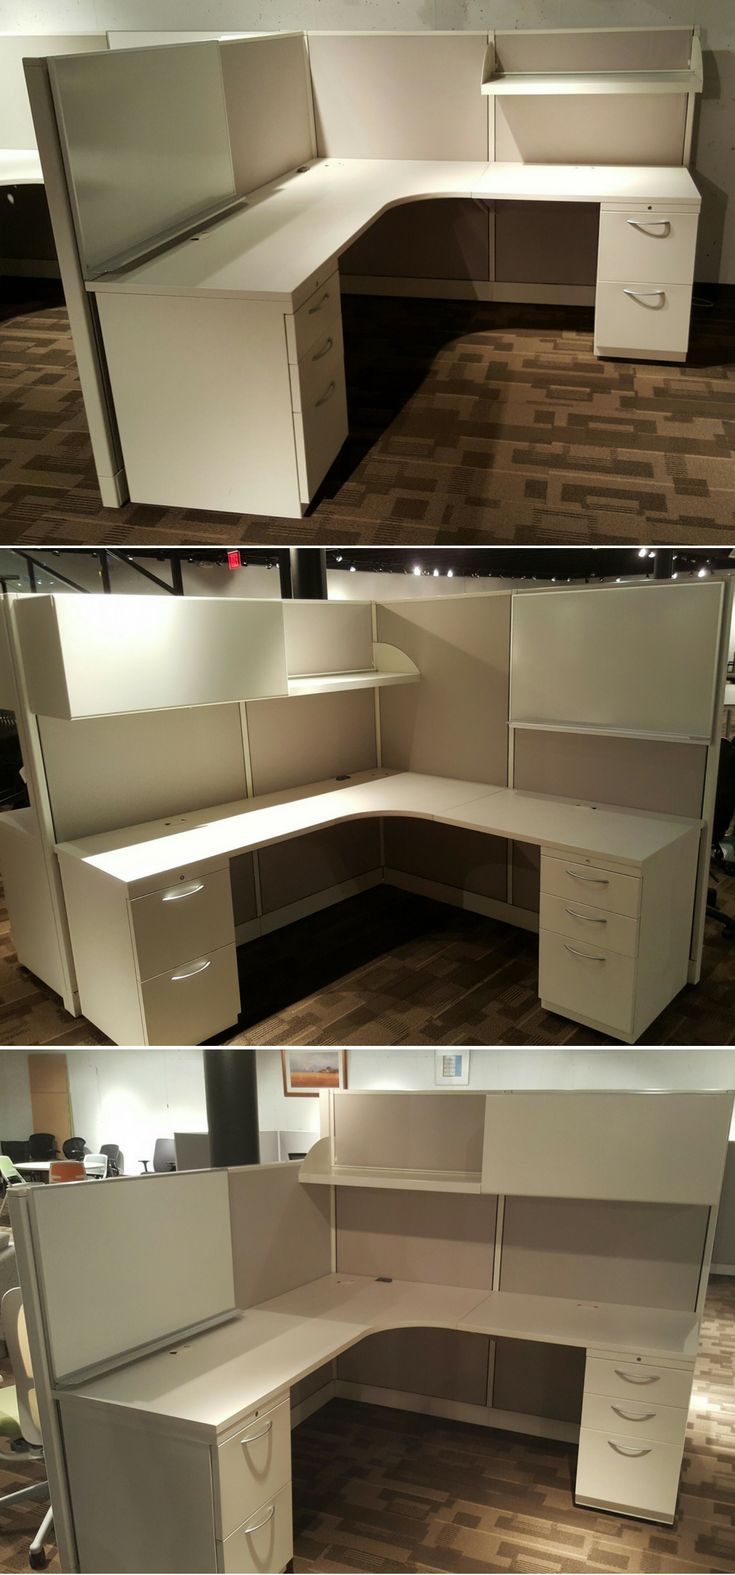 Used Cubicles In Kansas City. This Is The Same Allsteel Concensys Cubicle  Inventory Shown 3